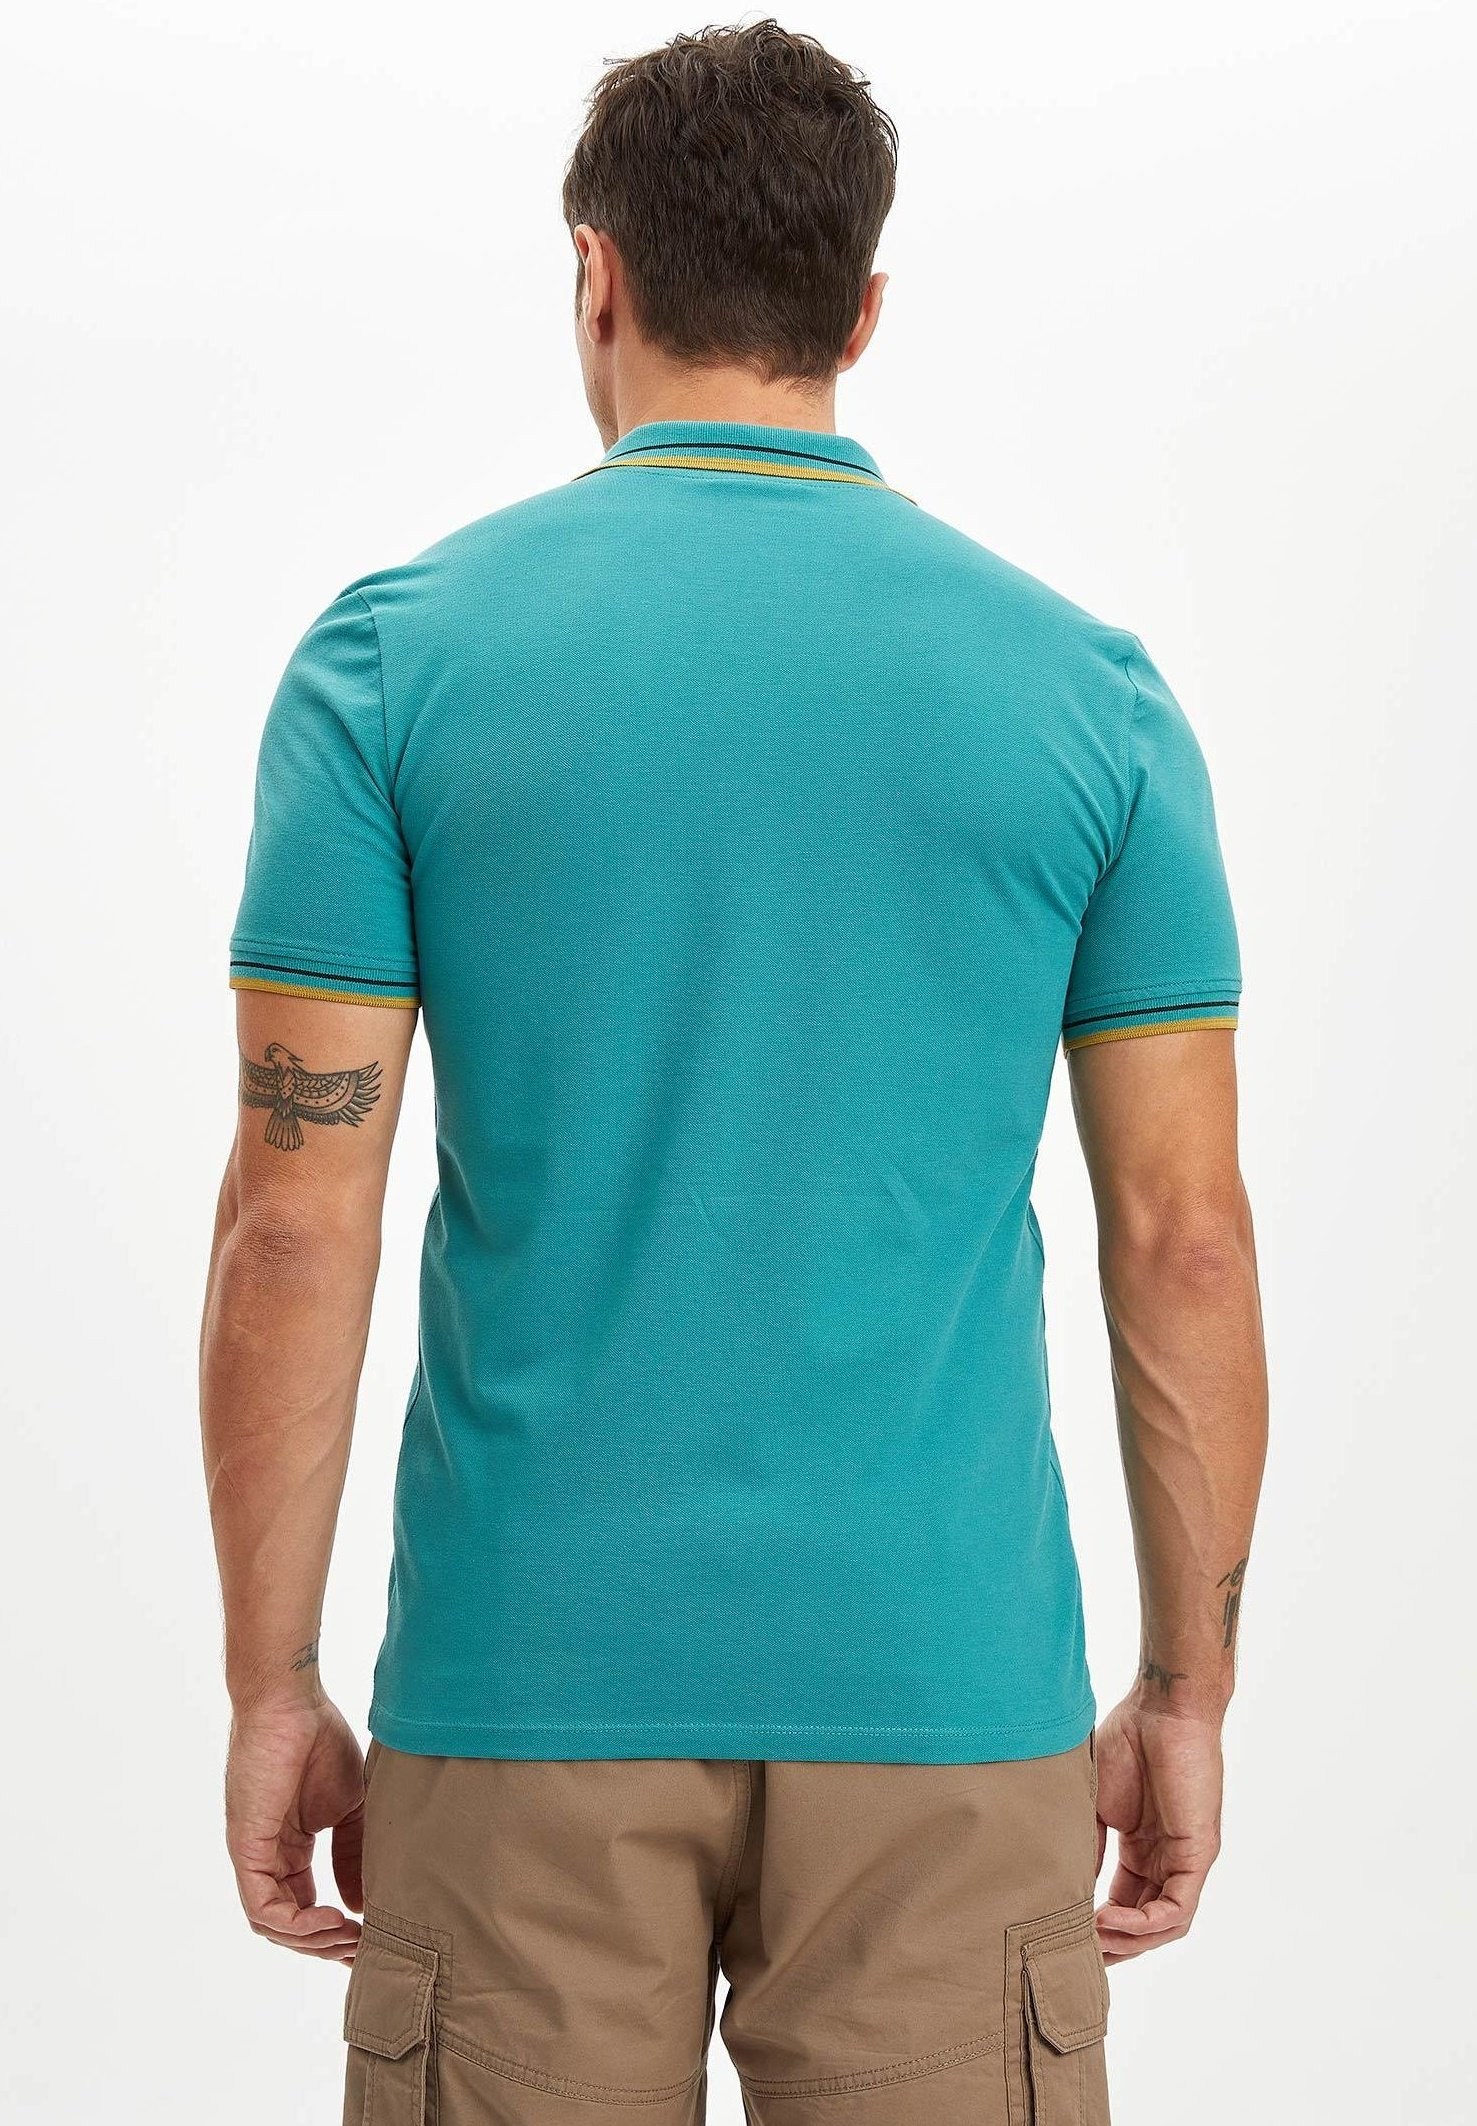 DeFacto Polo shirt - green 77mhN